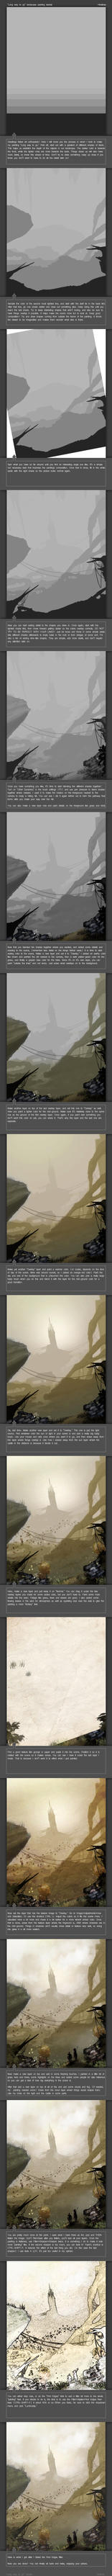 Environment Painting Tutorial by thefireis